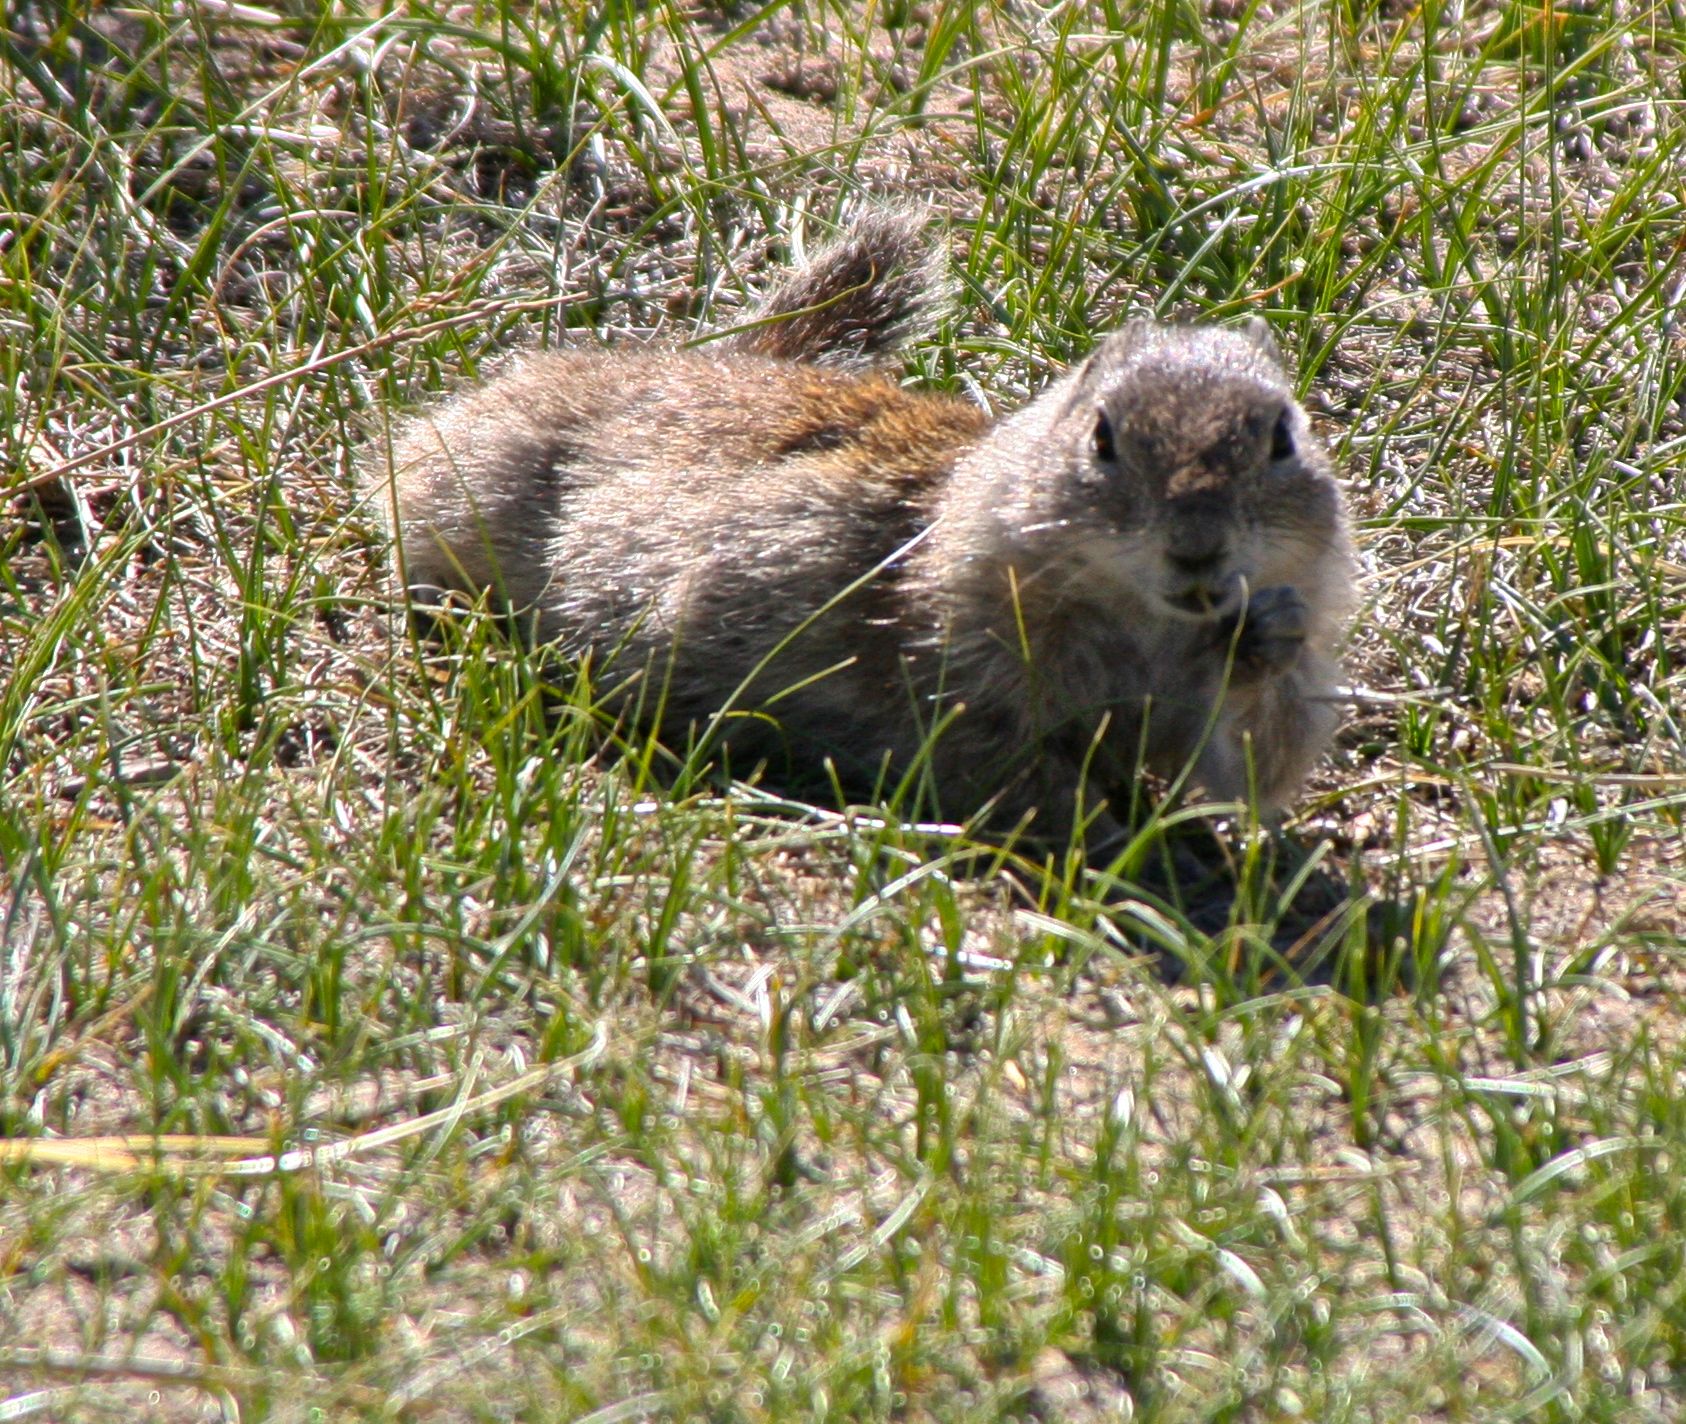 Prairie dog at Bodie State Historical Park in California.